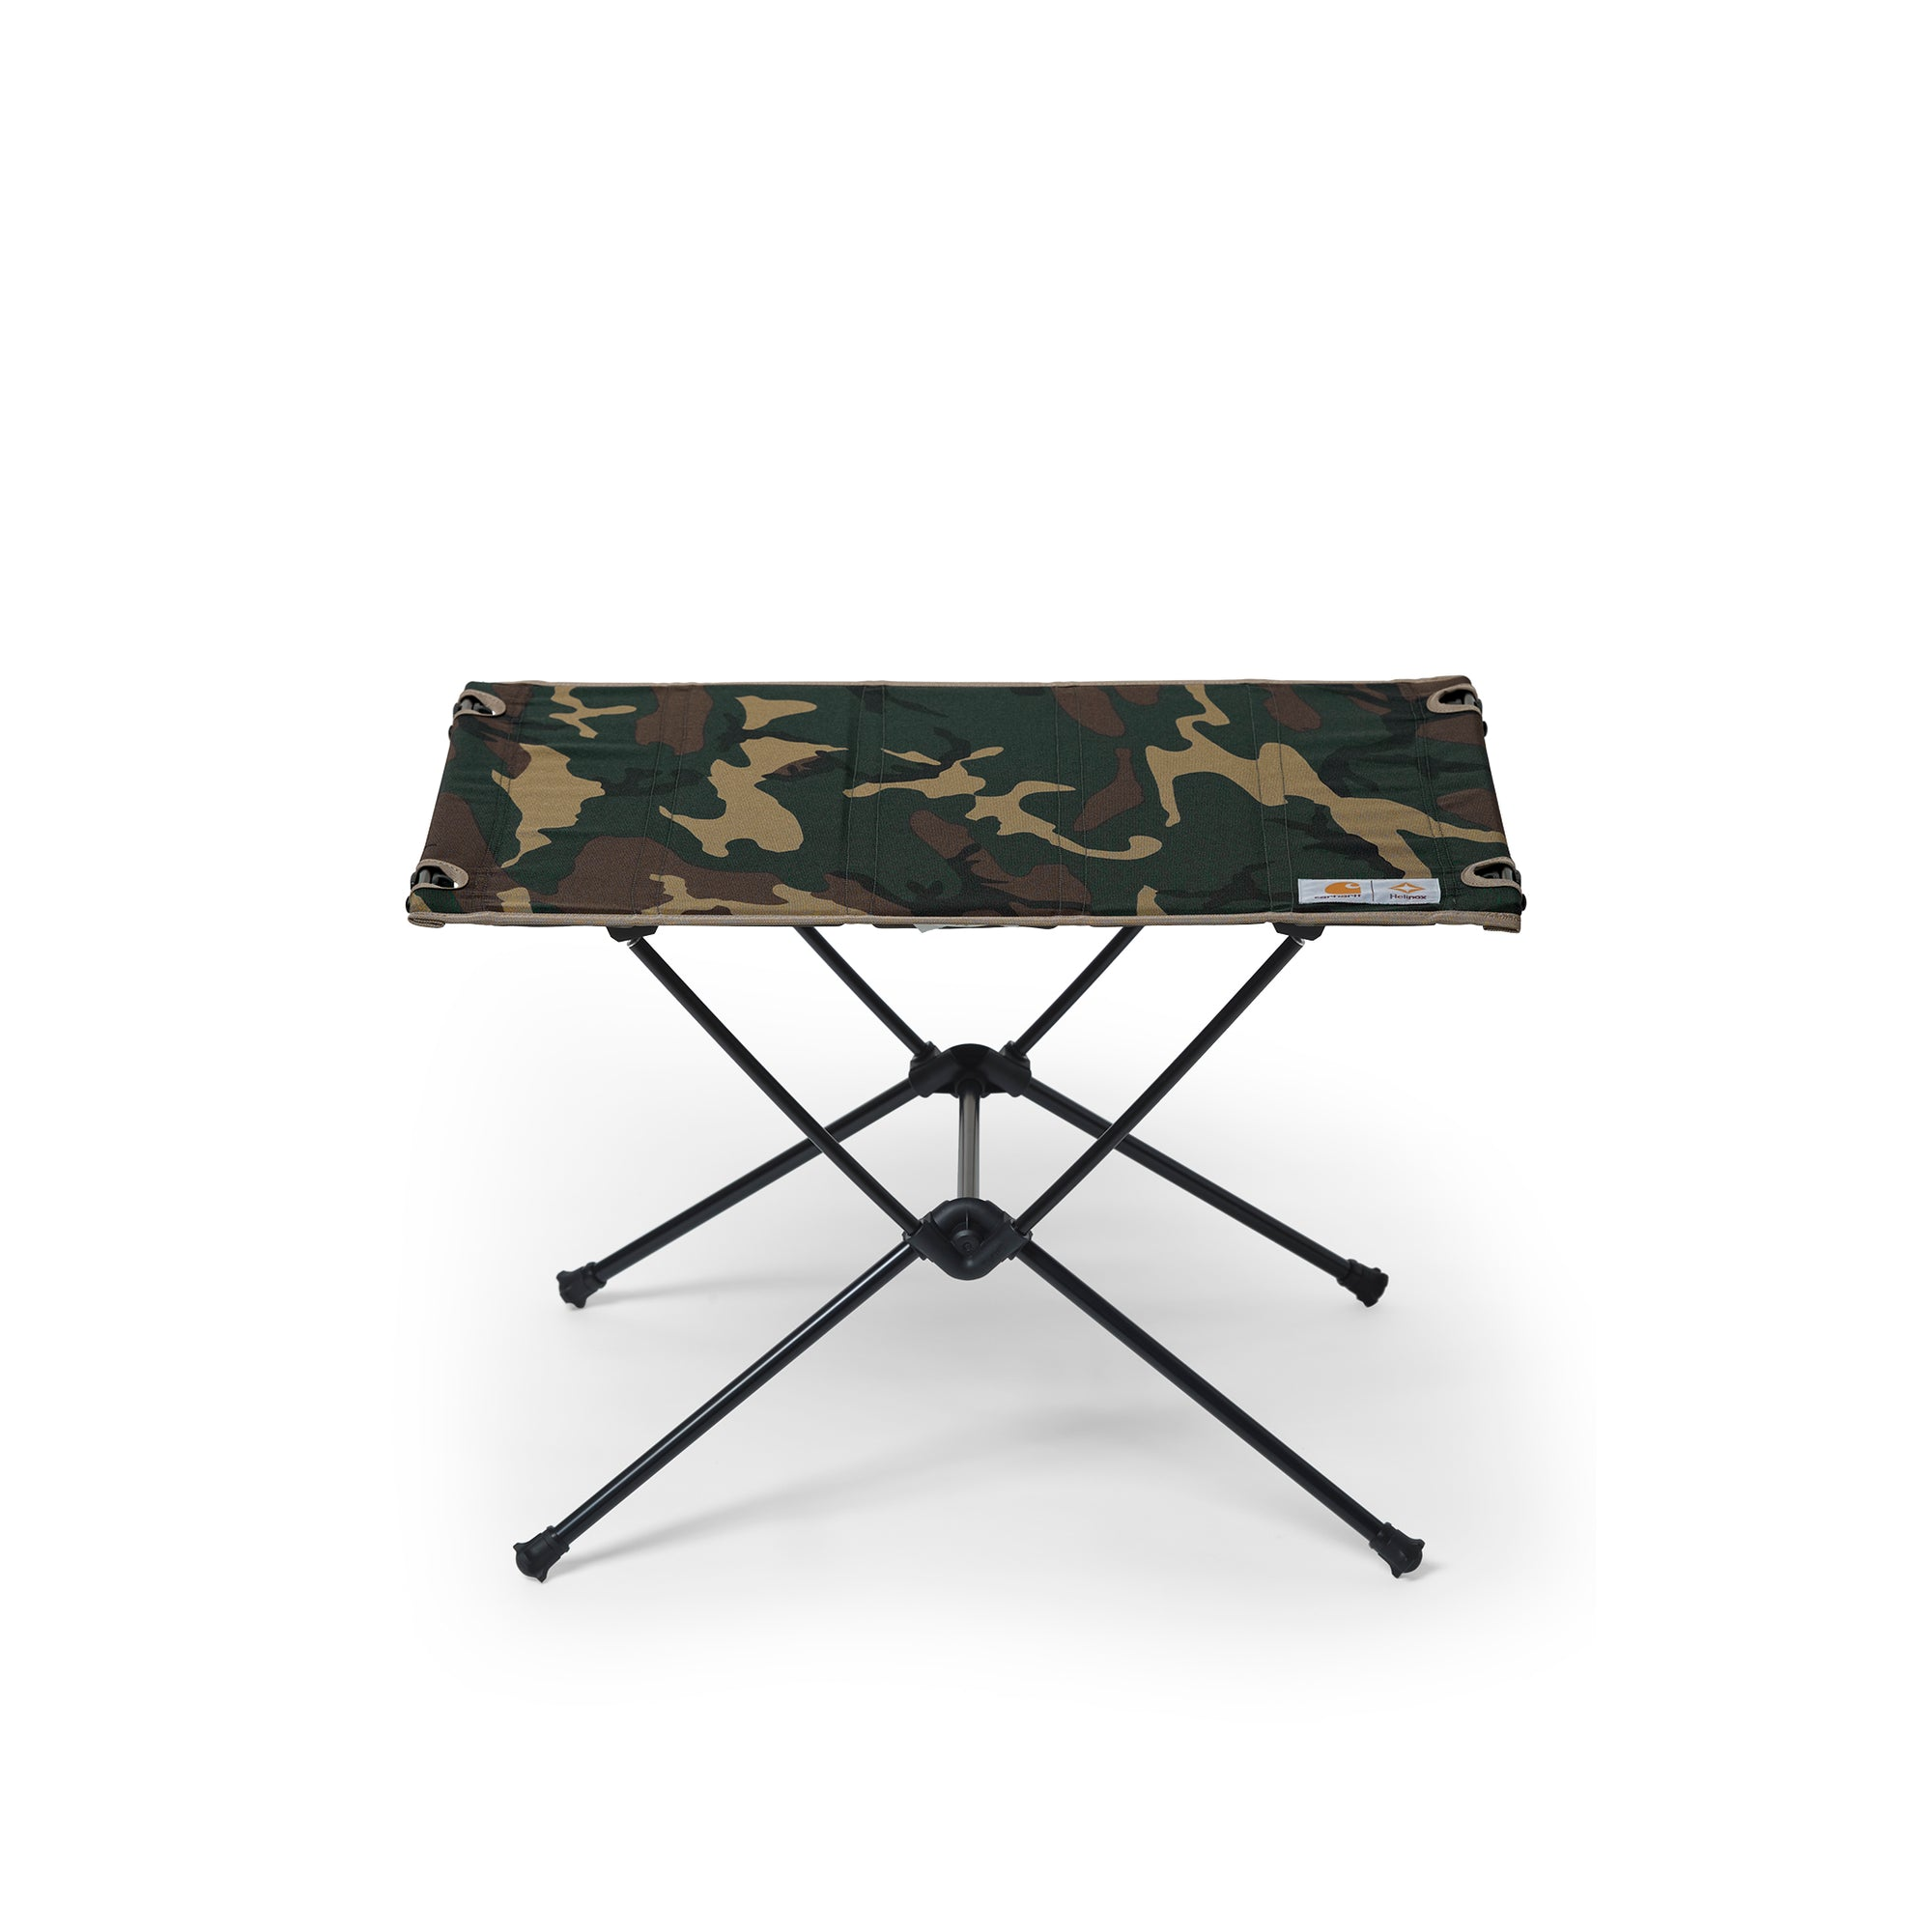 Carhartt WIP Valiant 4 Table One: Camo Laurel / Black - The Union Project